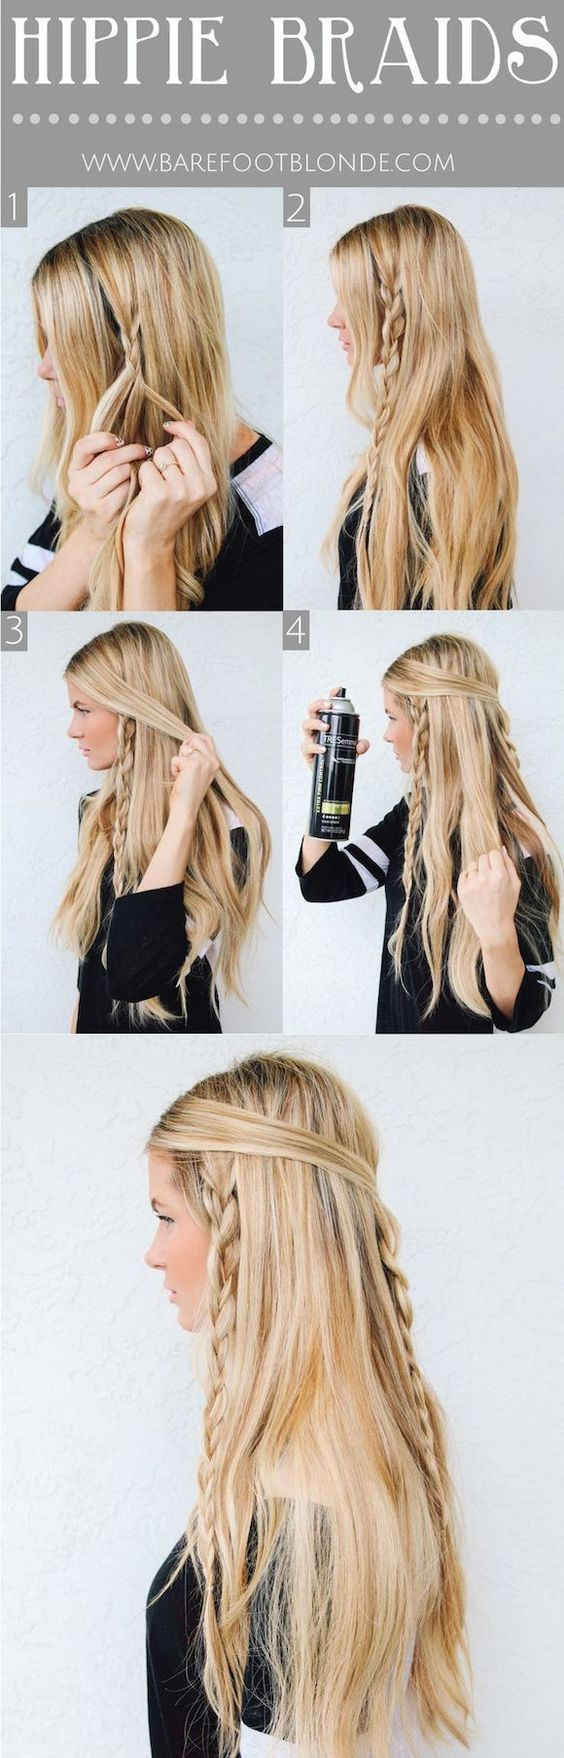 10 Of The Best Braided Hairstyles | Awesome DIY Hair Updo For Long Hair By Makeup Tutorials http://makeuptutorials.com/9-the-best-braided-hairstyles/: